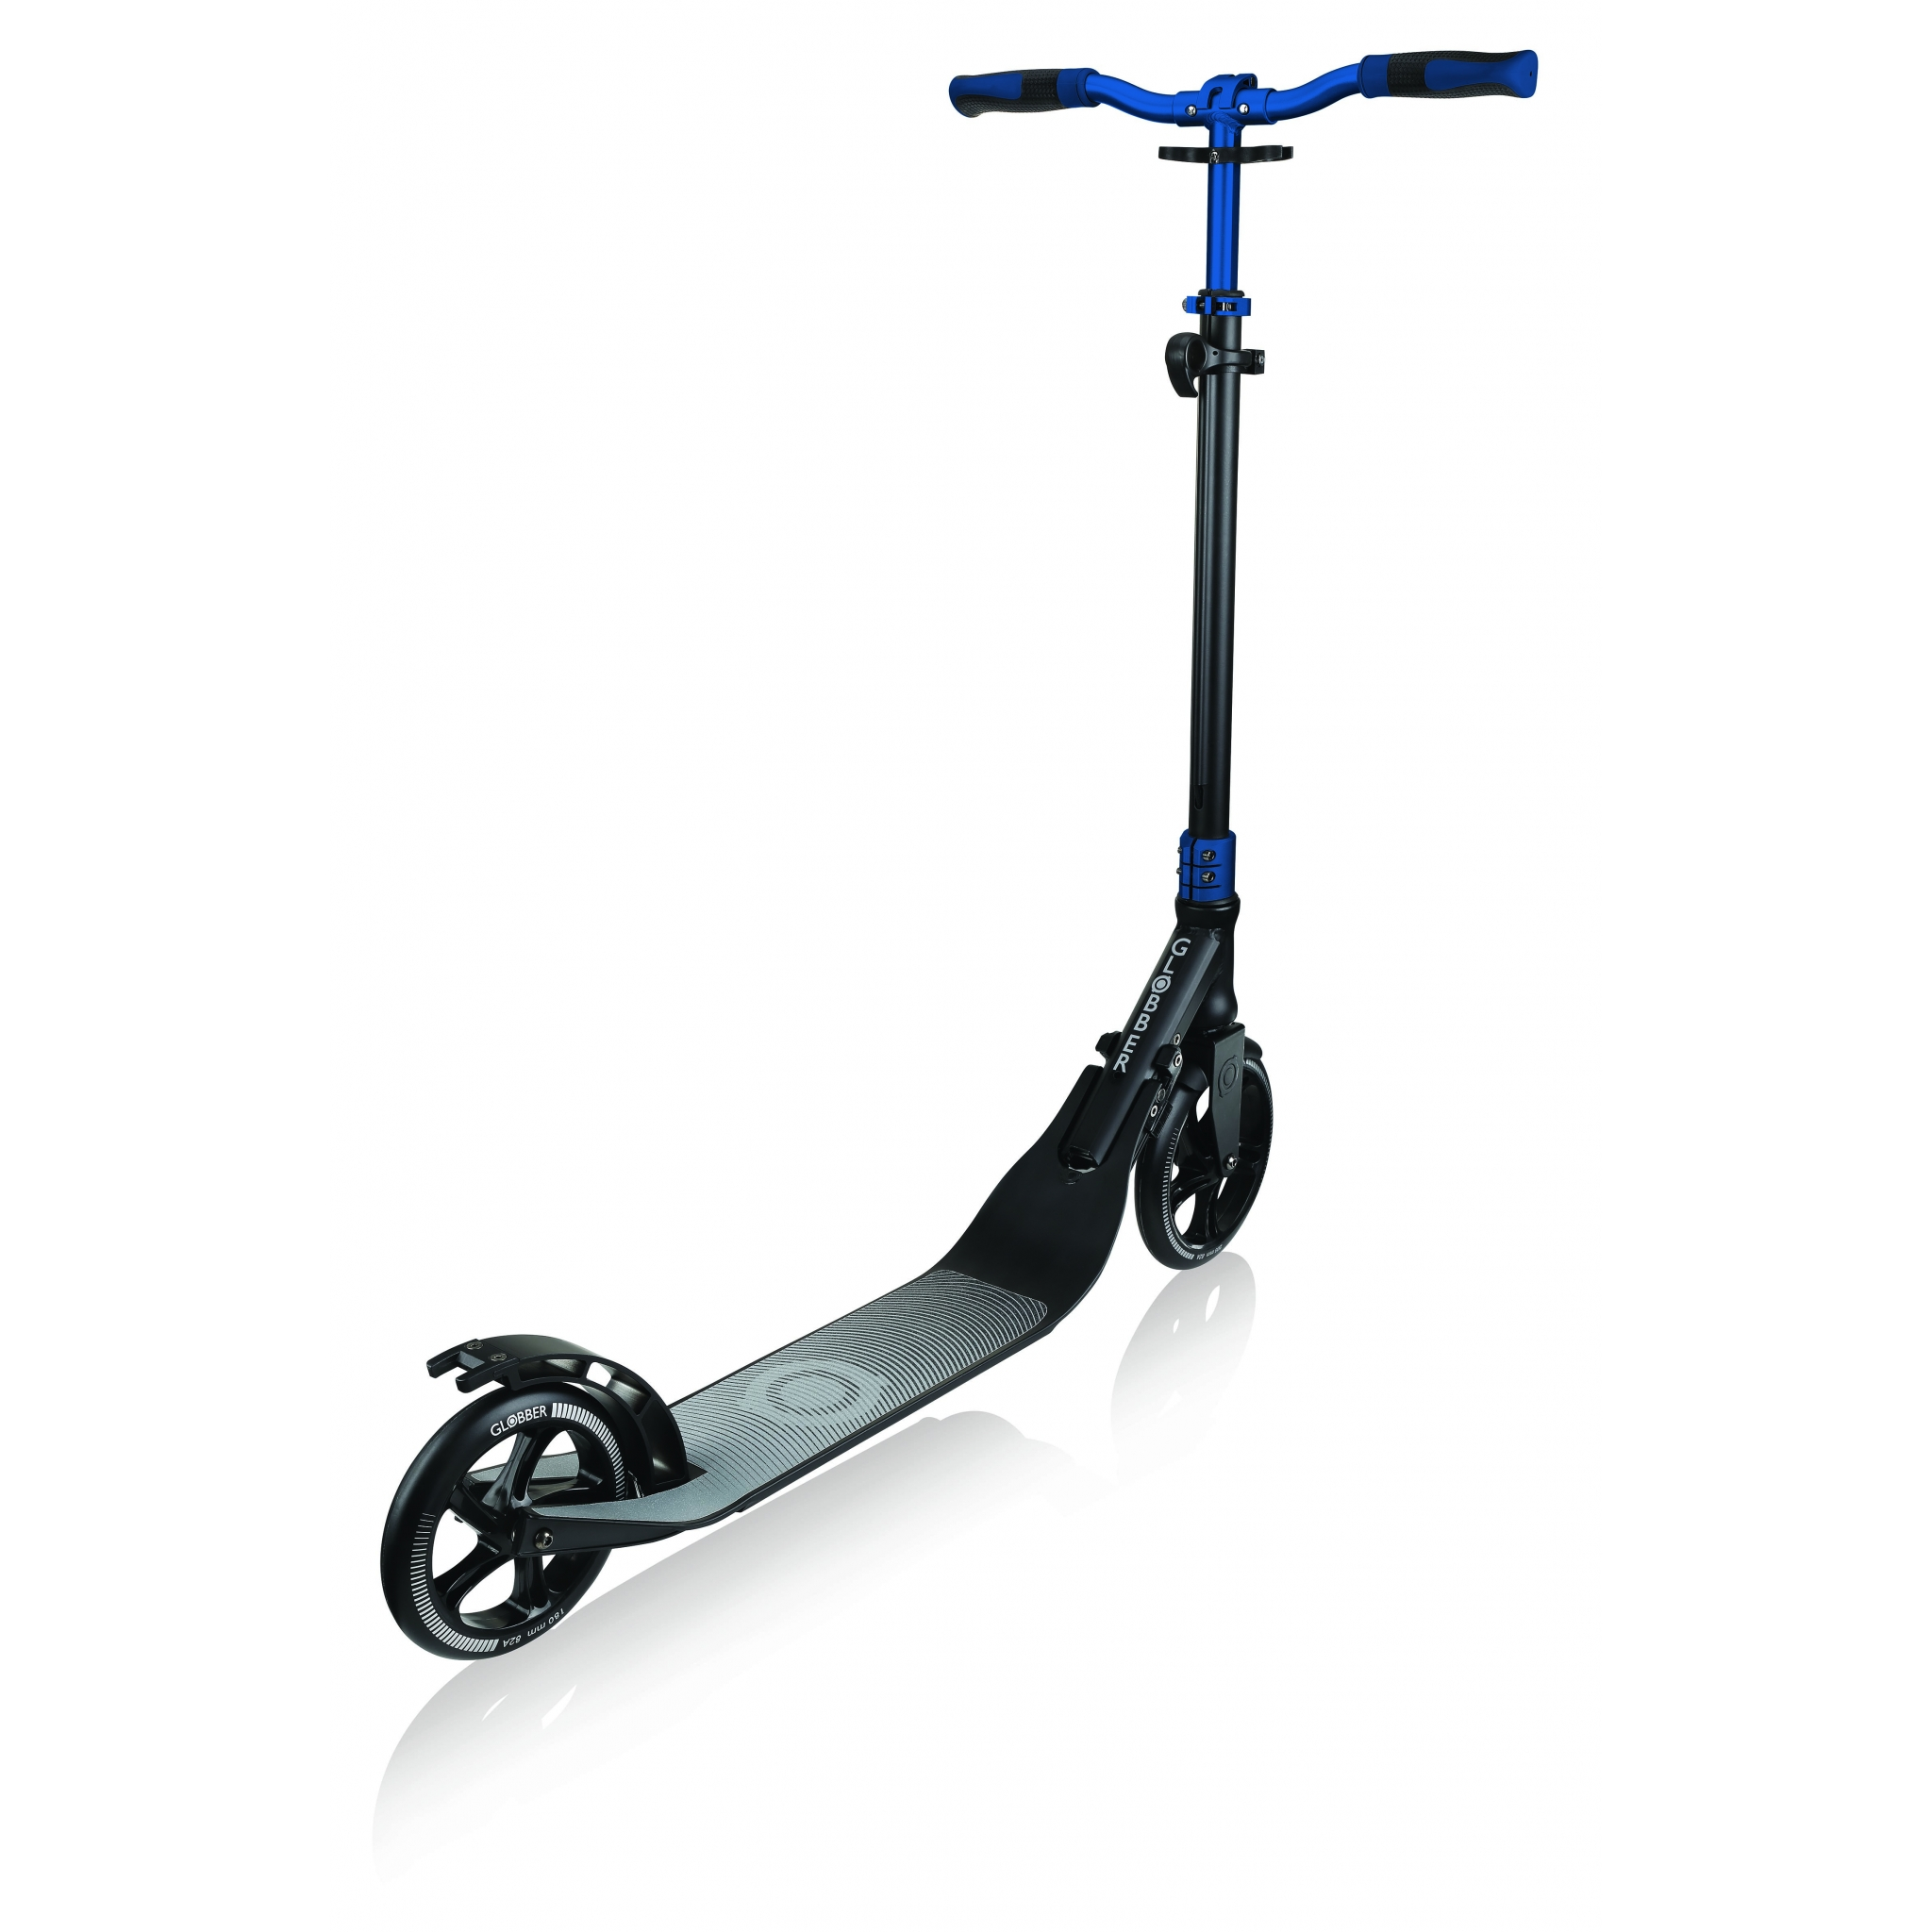 Globber-ONE-NL-205-180-DUO-2-wheel-foldable-scooter-for-adults-with-foldable-handlebar-cobalt-blue